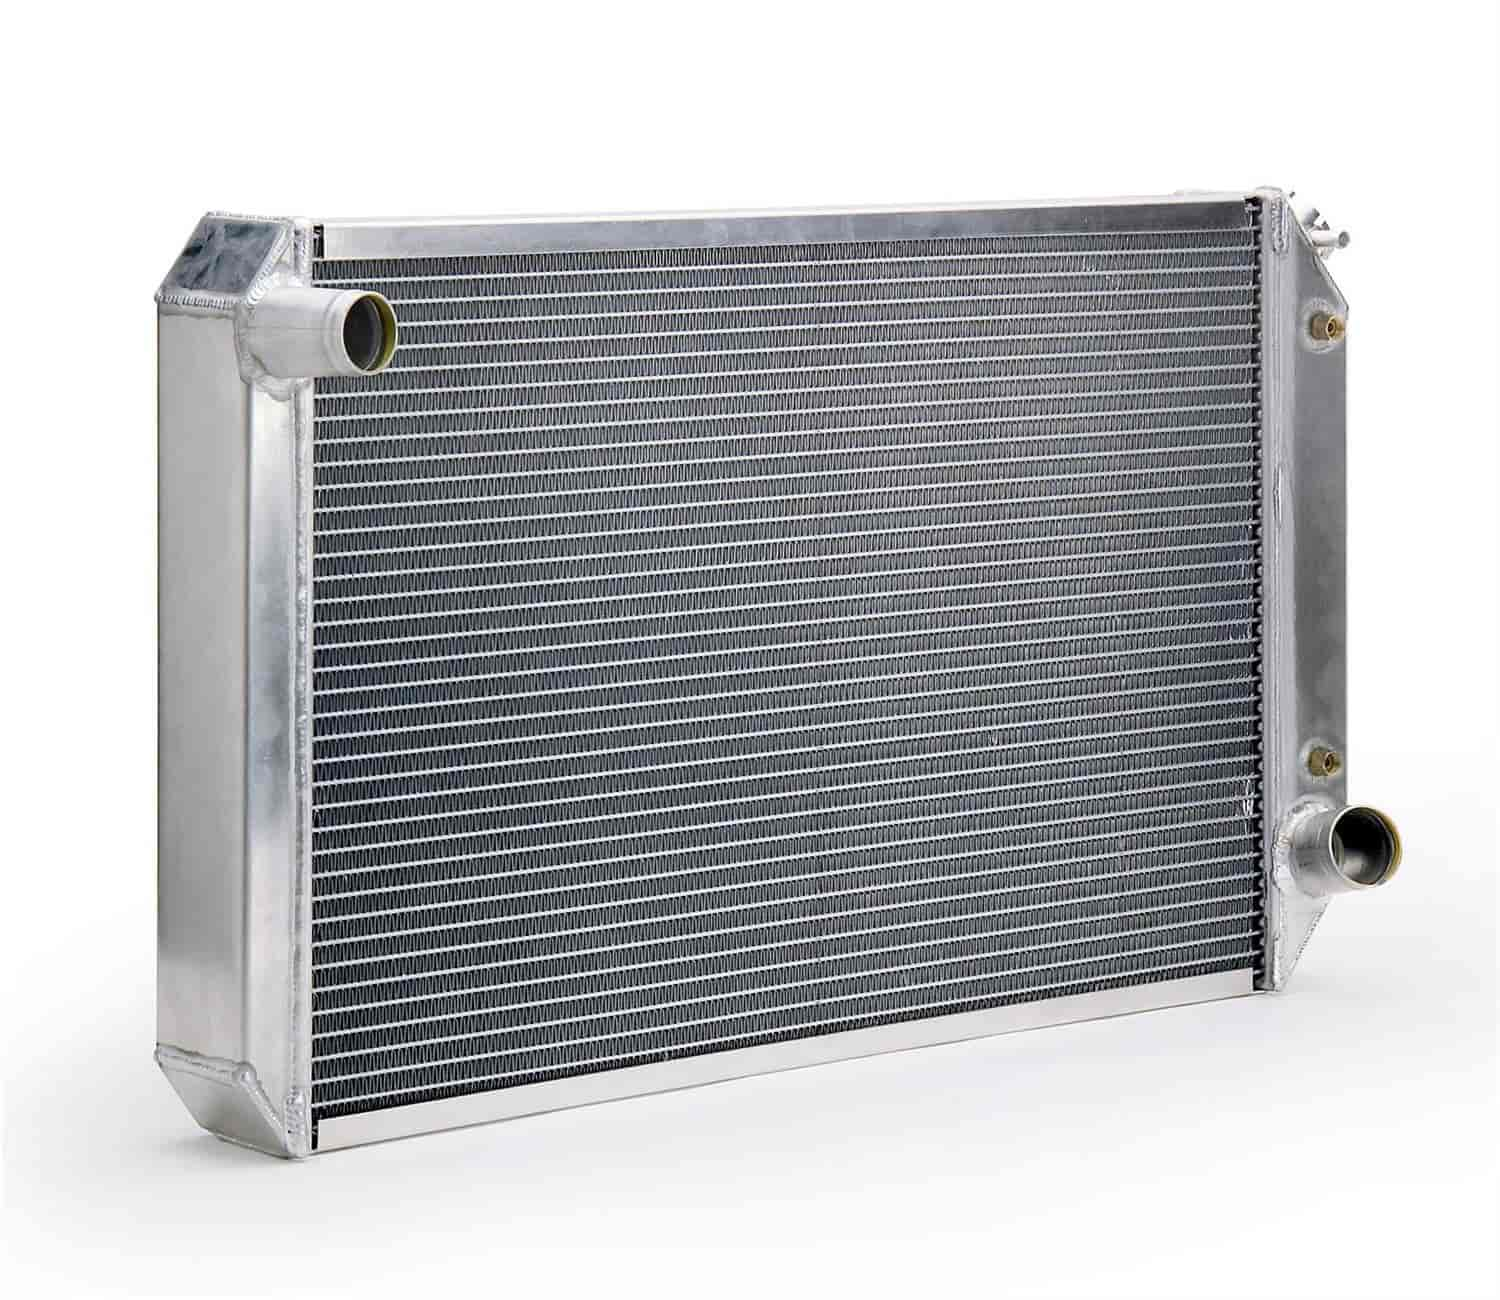 Be Cool Radiators 62236 - Be Cool Crossflow Series Aluminum Radiators